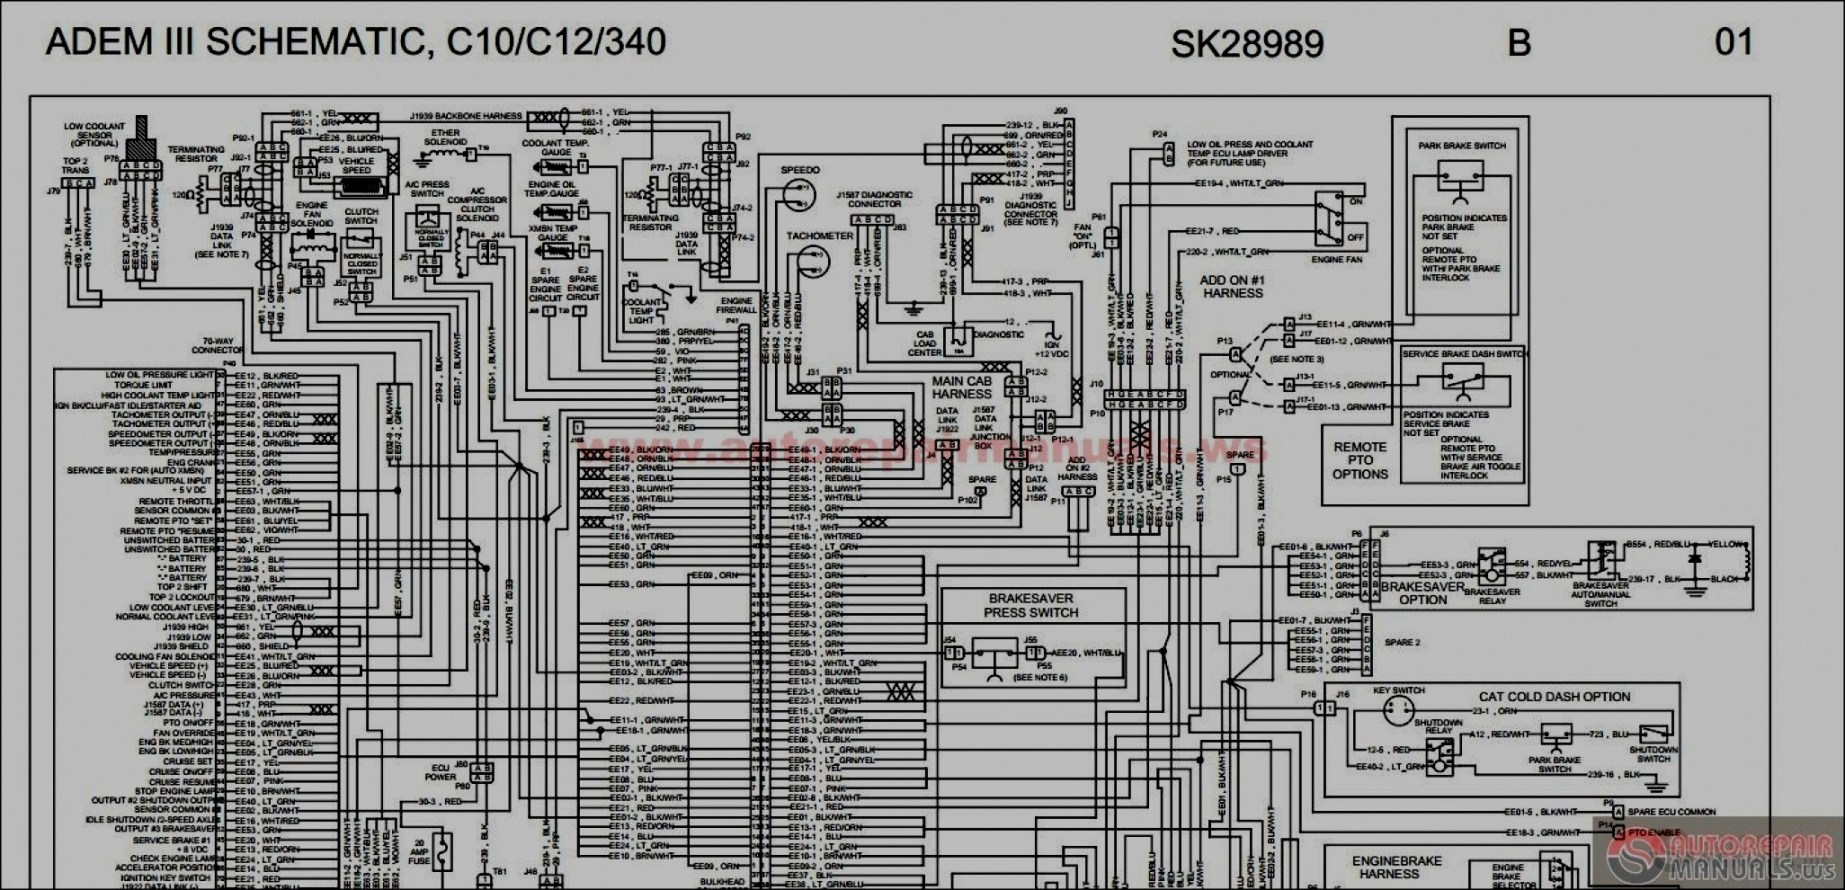 2004 Peterbilt 379 Wiring Diagram - 1978 Yamaha 650 Special Wiring Diagram  for Wiring Diagram SchematicsWiring Diagram Schematics